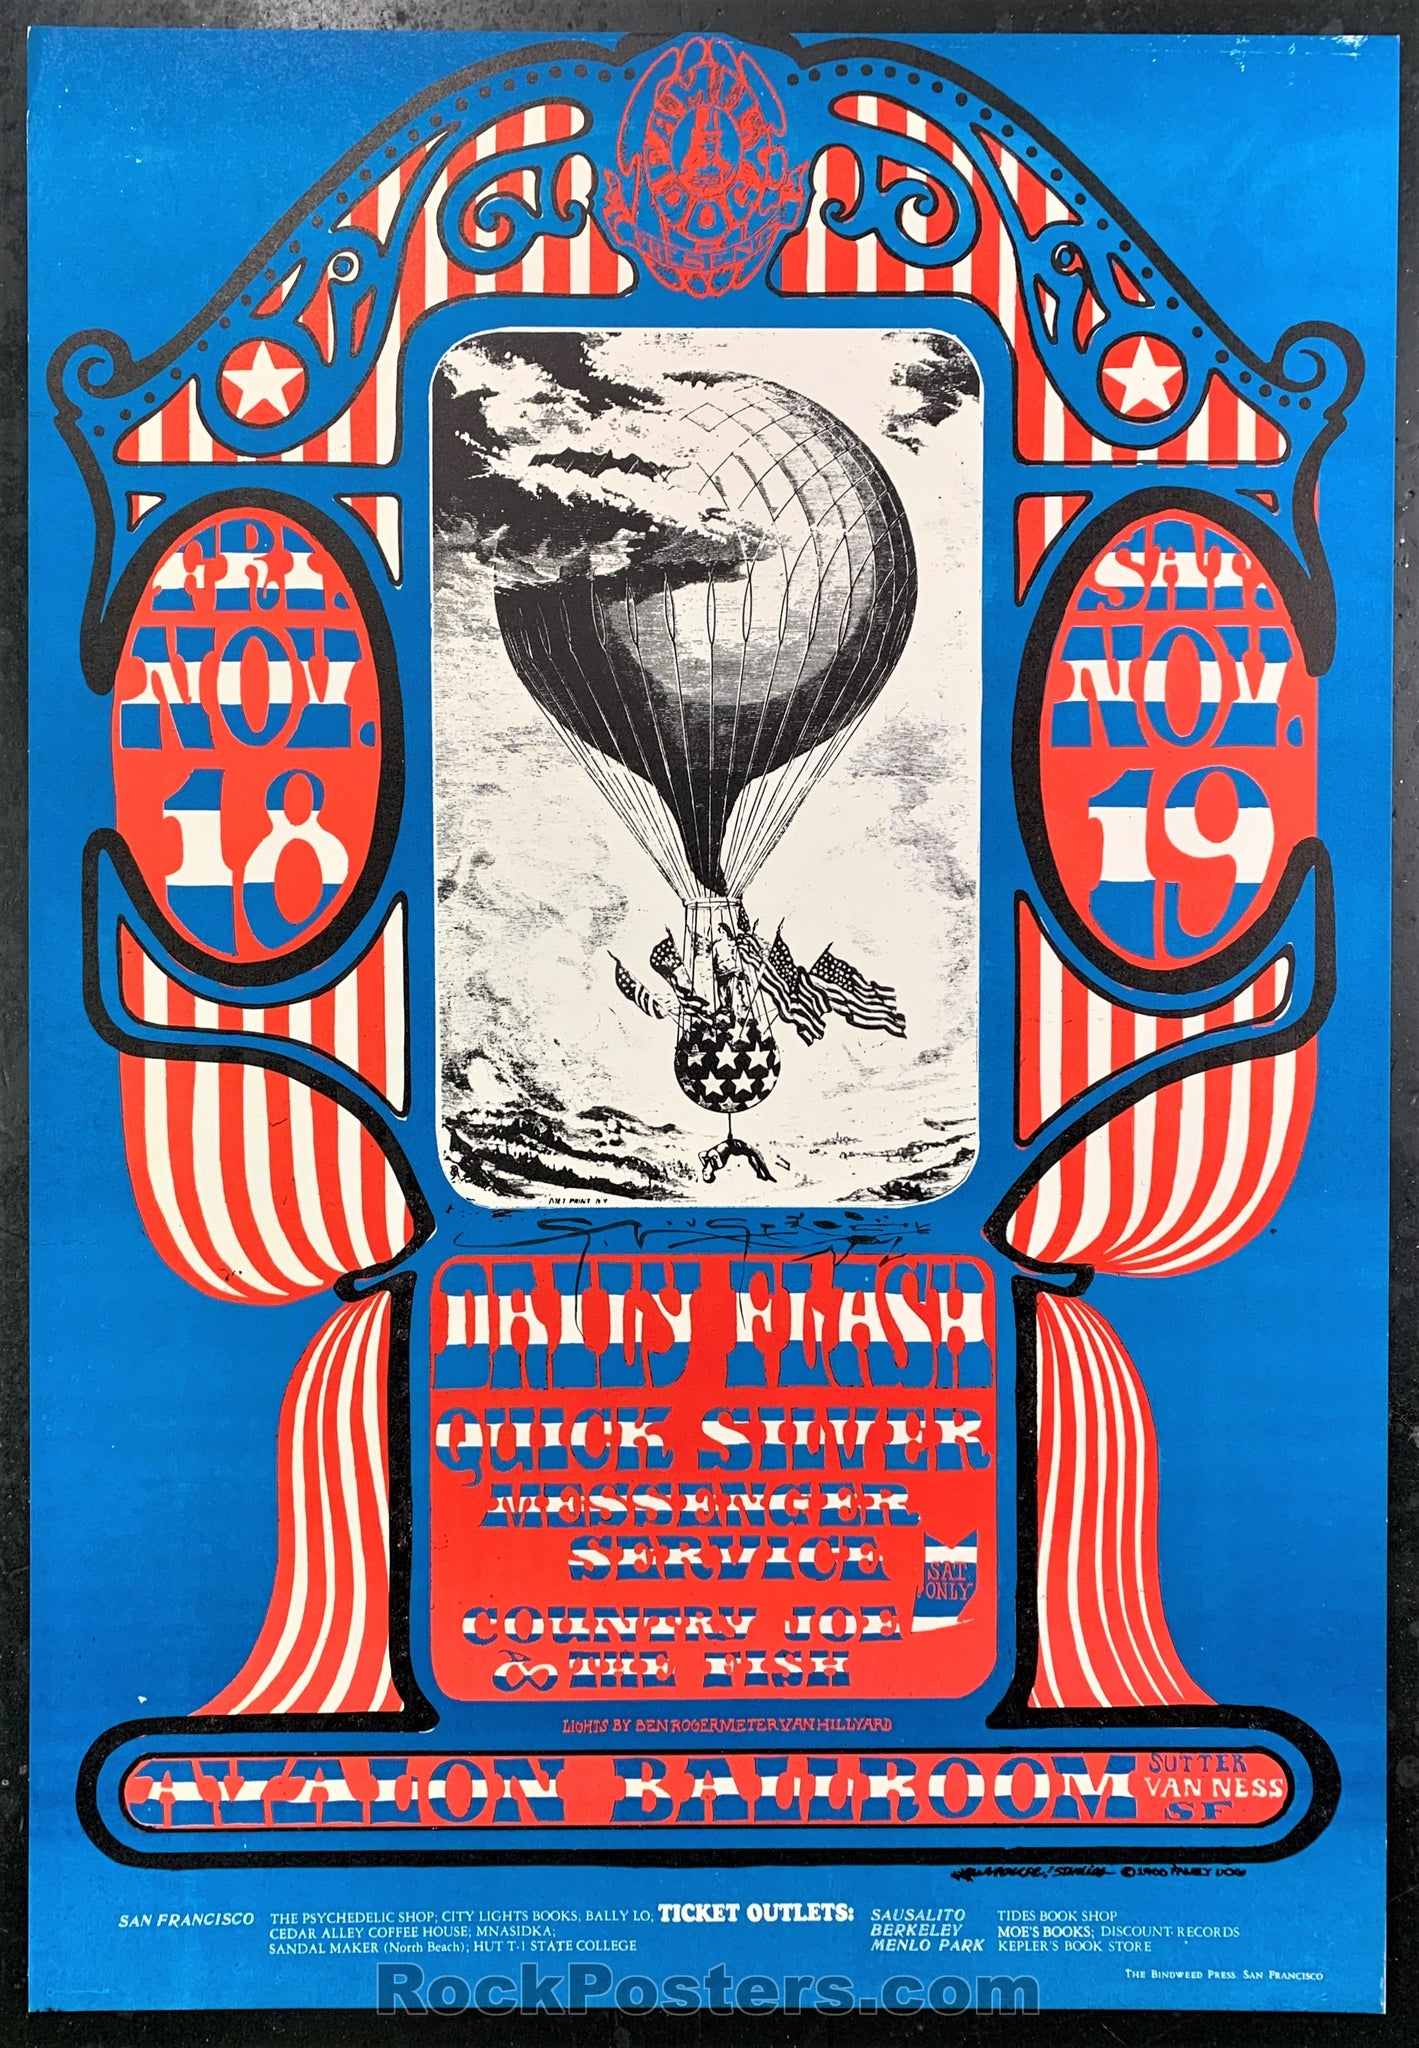 AUCTION - FD-35 - Daily Flash 1966 Poster - Mouse Signed - Avalon Ballroom - Near Mint Minus